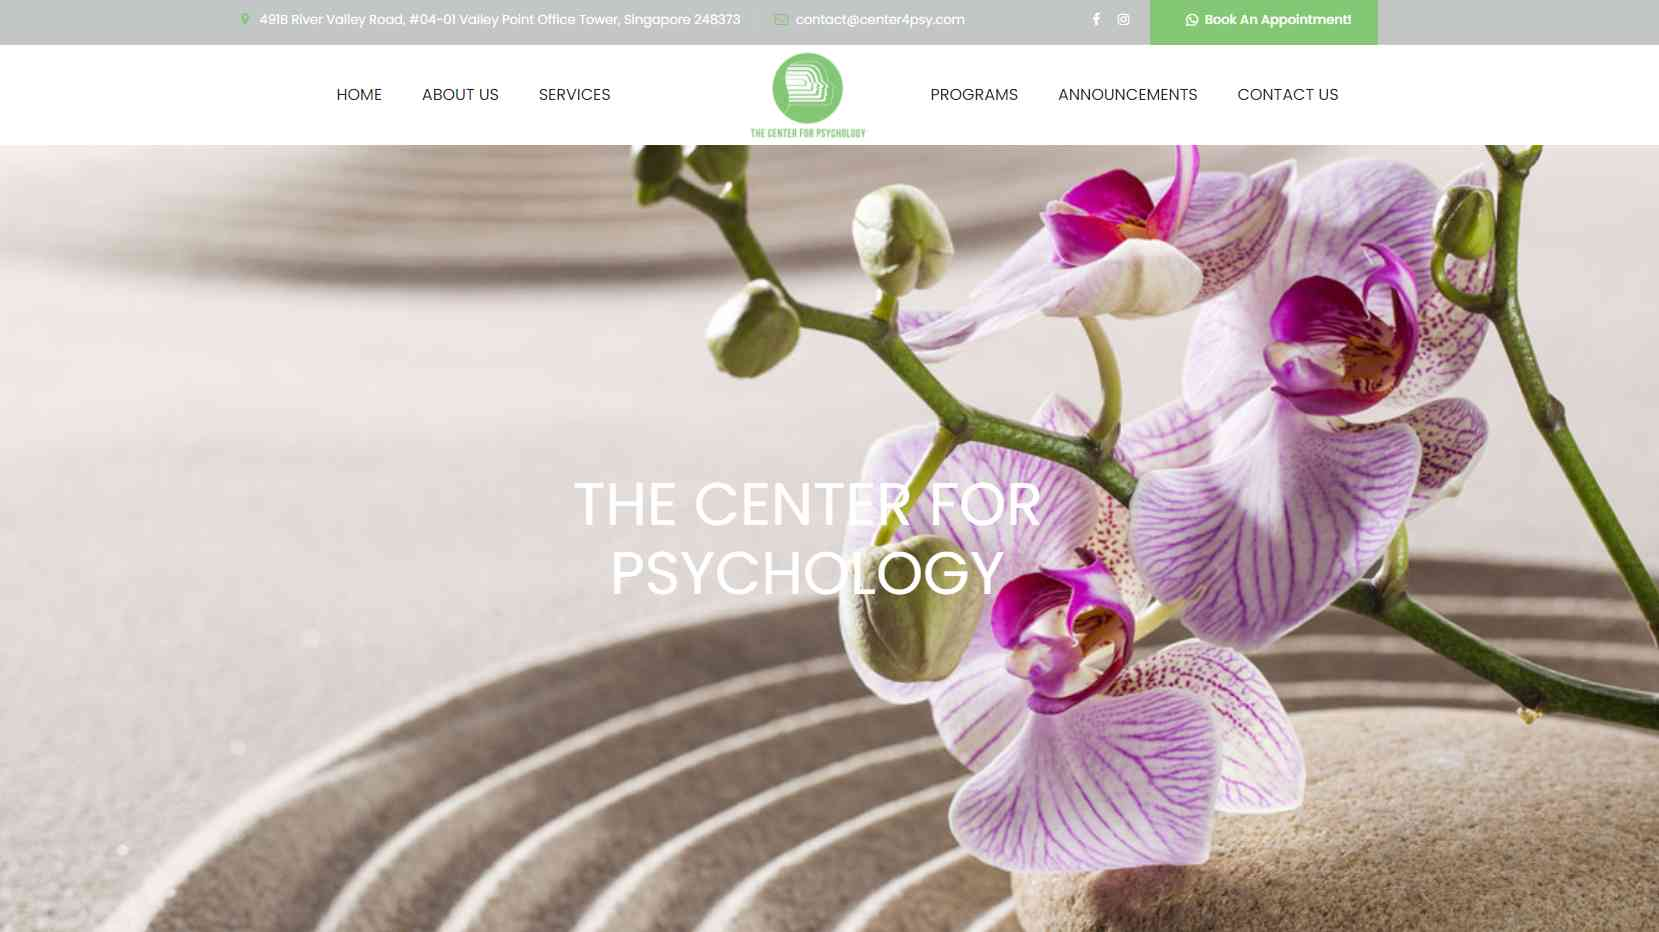 center for psy Top Art Therapy Providers in Singapore